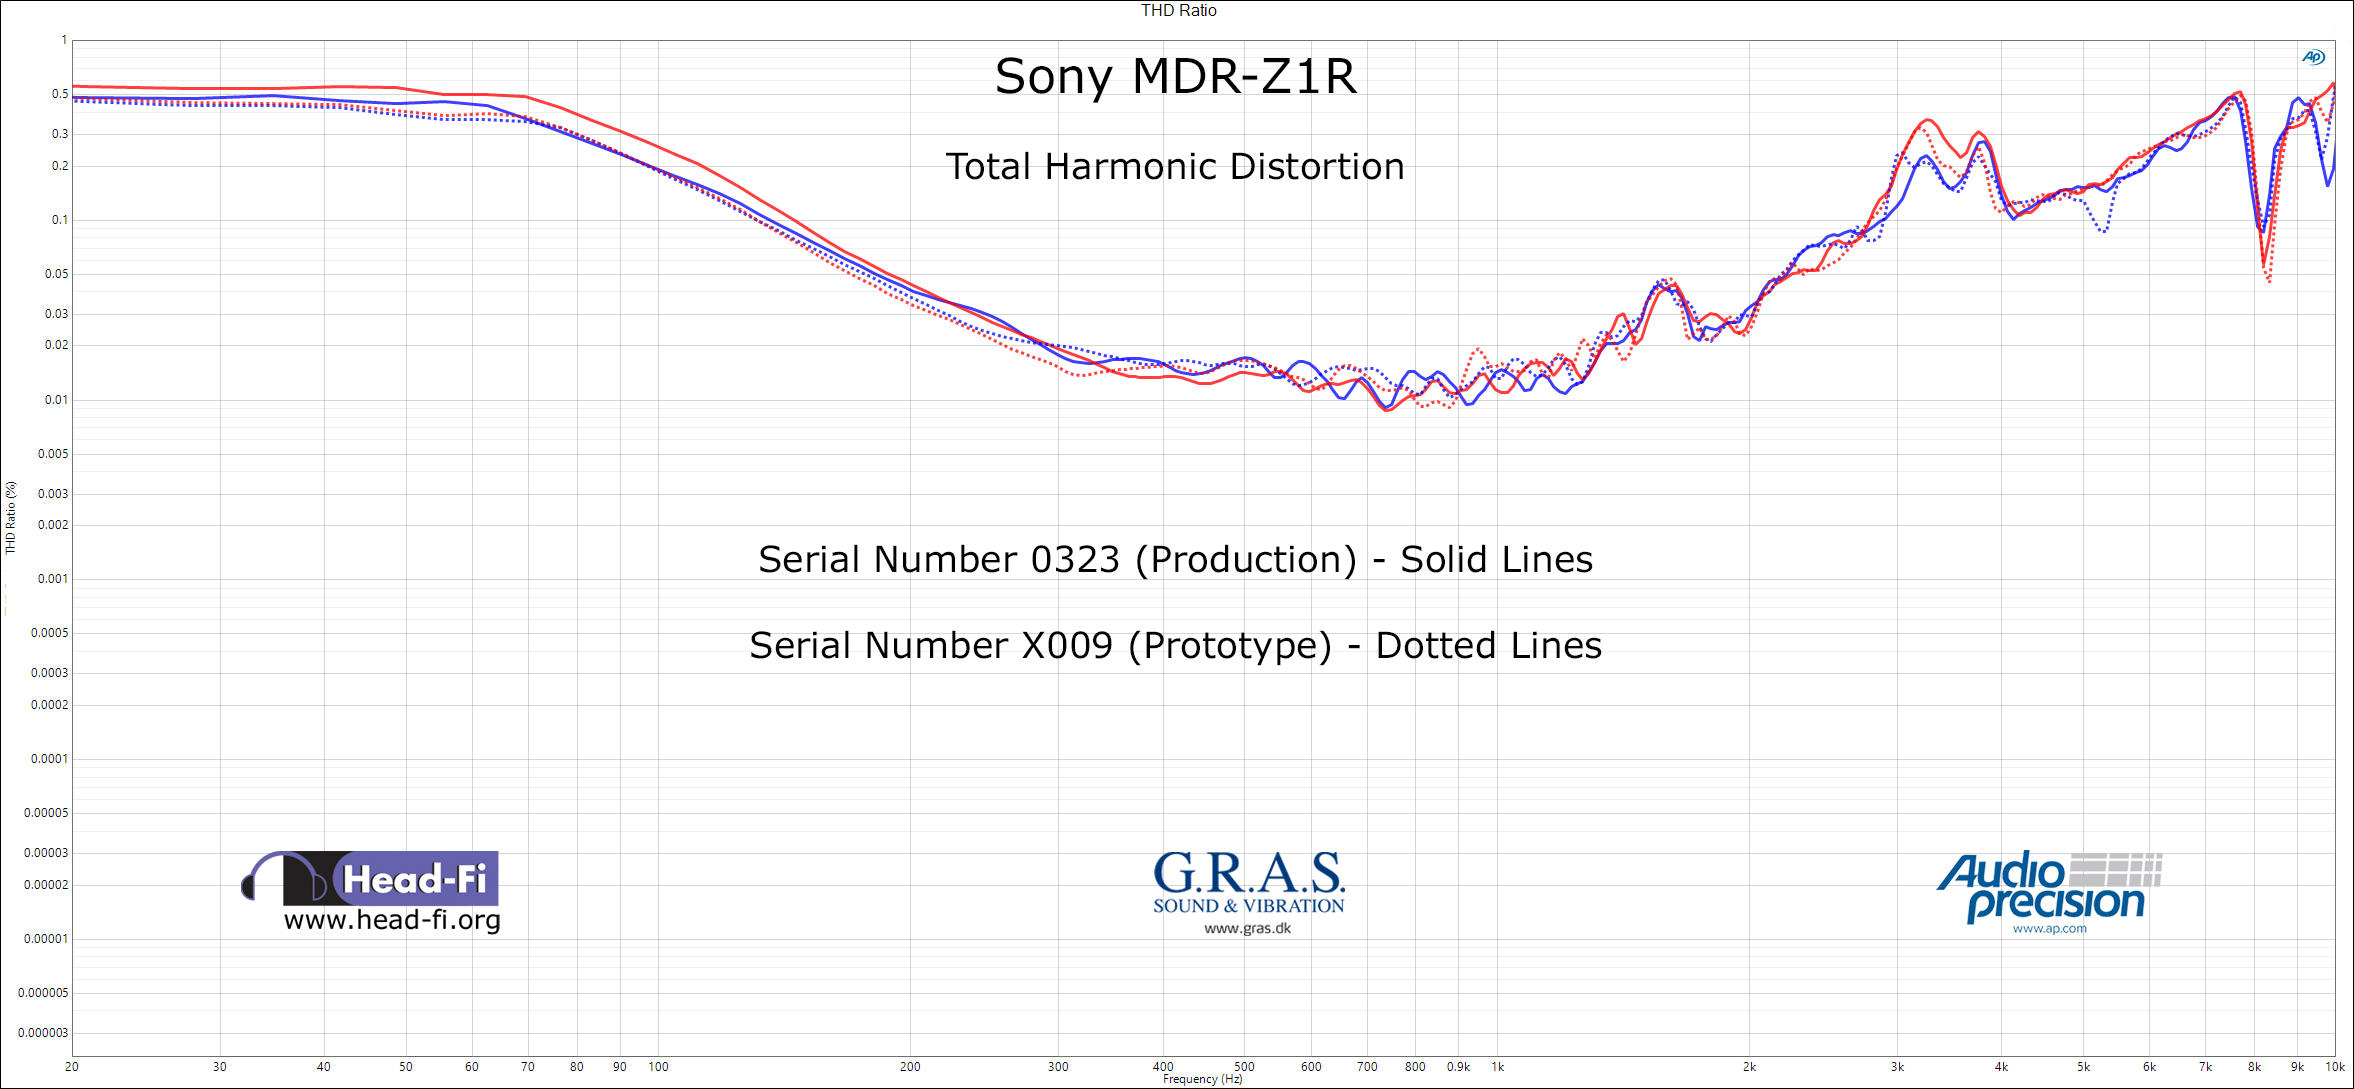 THD-Sony-MDR-Z1R-Serial-0323-and-Serial-X009 LABELED.jpg